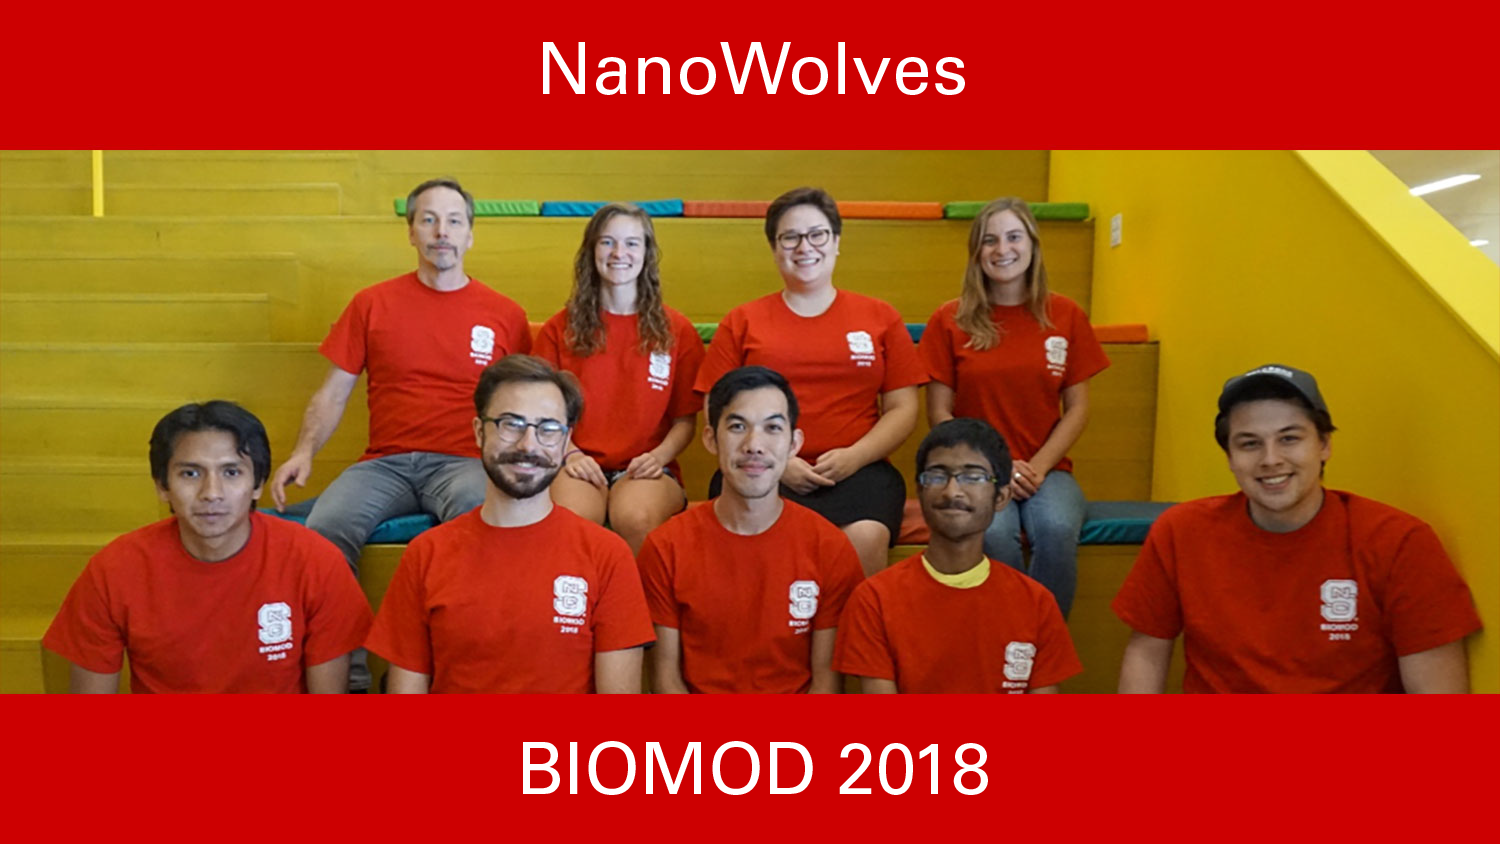 NanoWolves, Biomod 2018